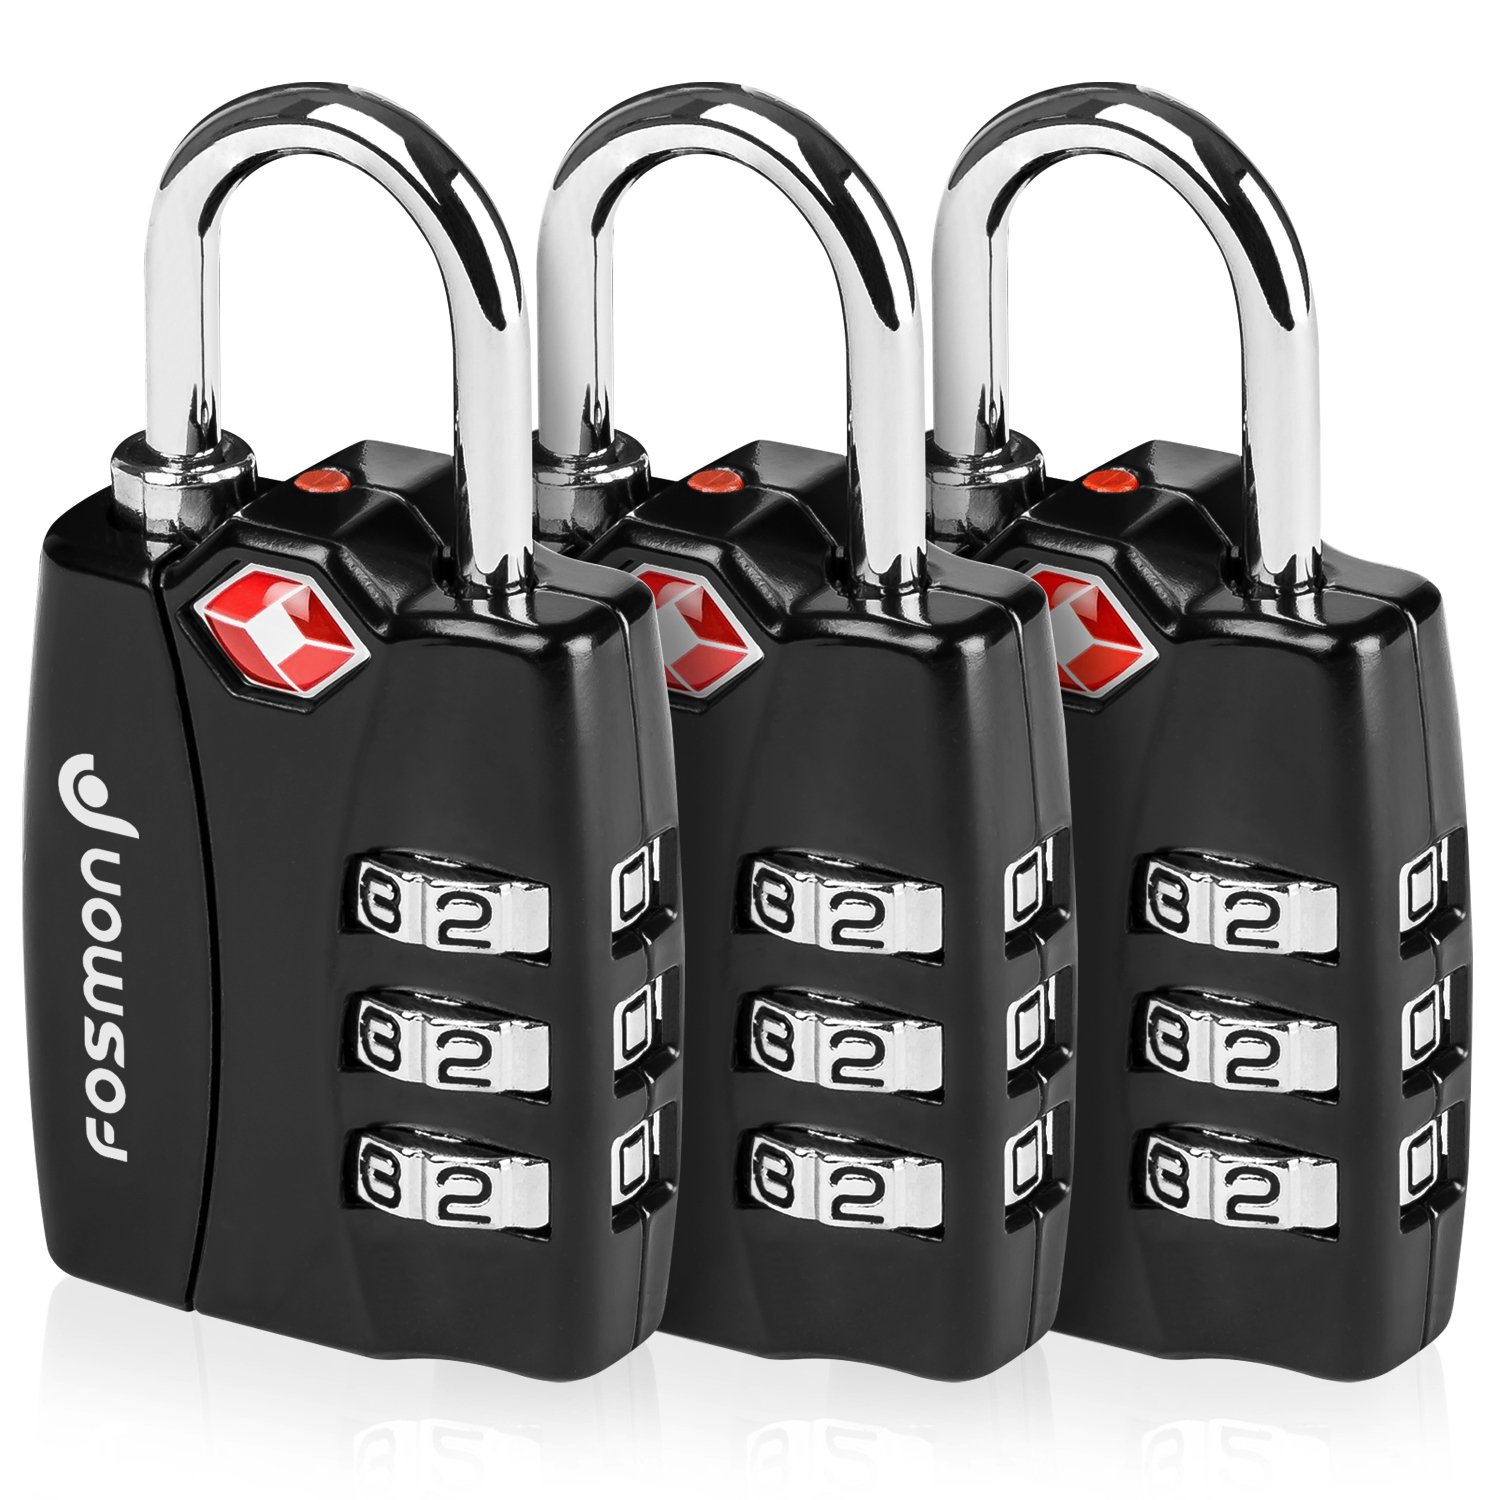 TSA Approved Luggage Locks, Fosmon (3 Pack) Open Alert Indicator 3 Digit Combination Padlock Codes with Alloy Body for Travel Bag, Suit Case, Lockers, Gym, Bike Locks or Other 51015HOM*3Pack